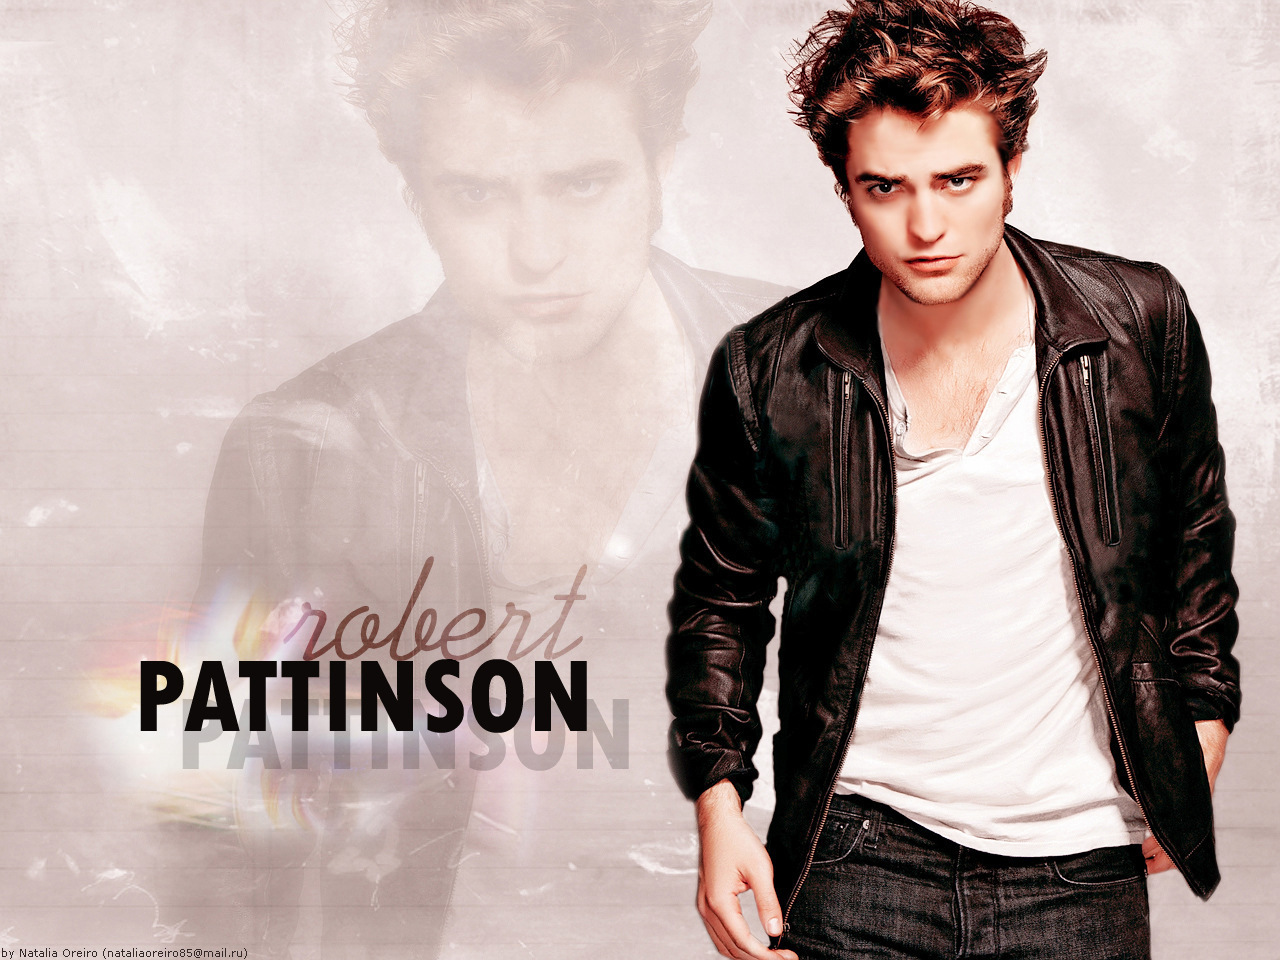 ROBERT PATTINSON - Pagina 3 Rob-Pattinson-so-Hot-robert-pattinson-9215590-1280-960